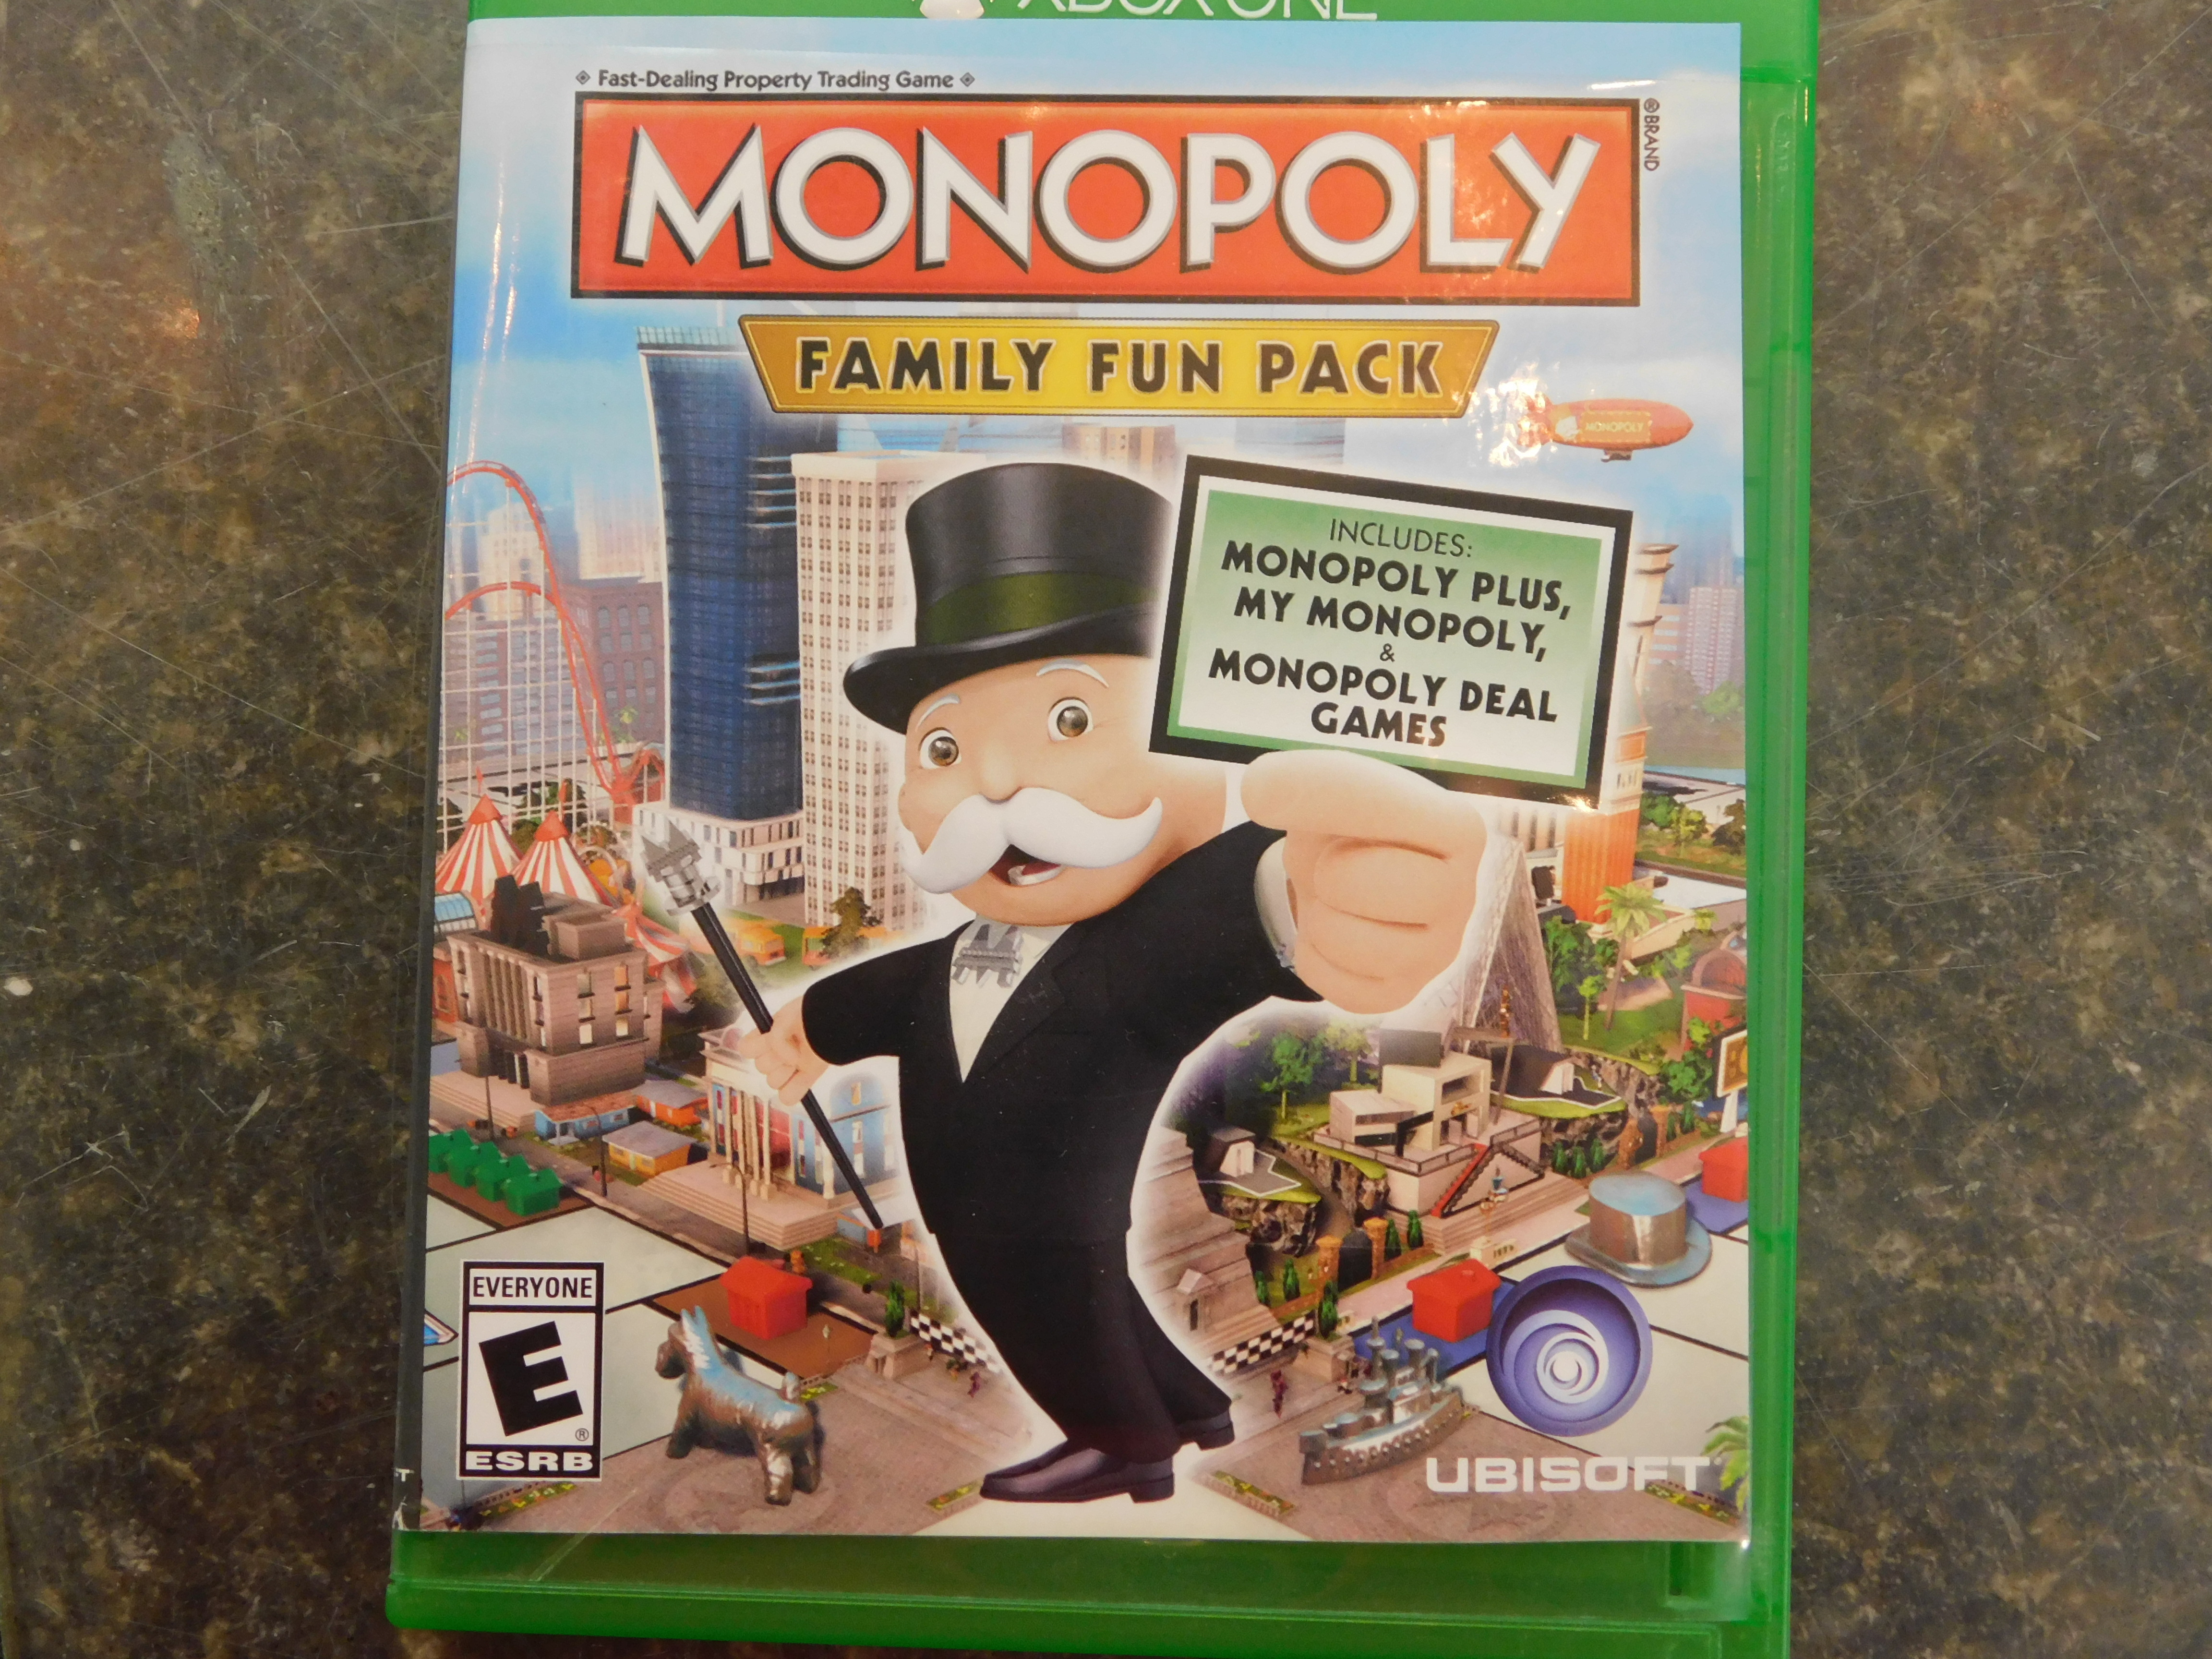 XBOX ONE MONOPOLY FAMILY FUN PACK GAME